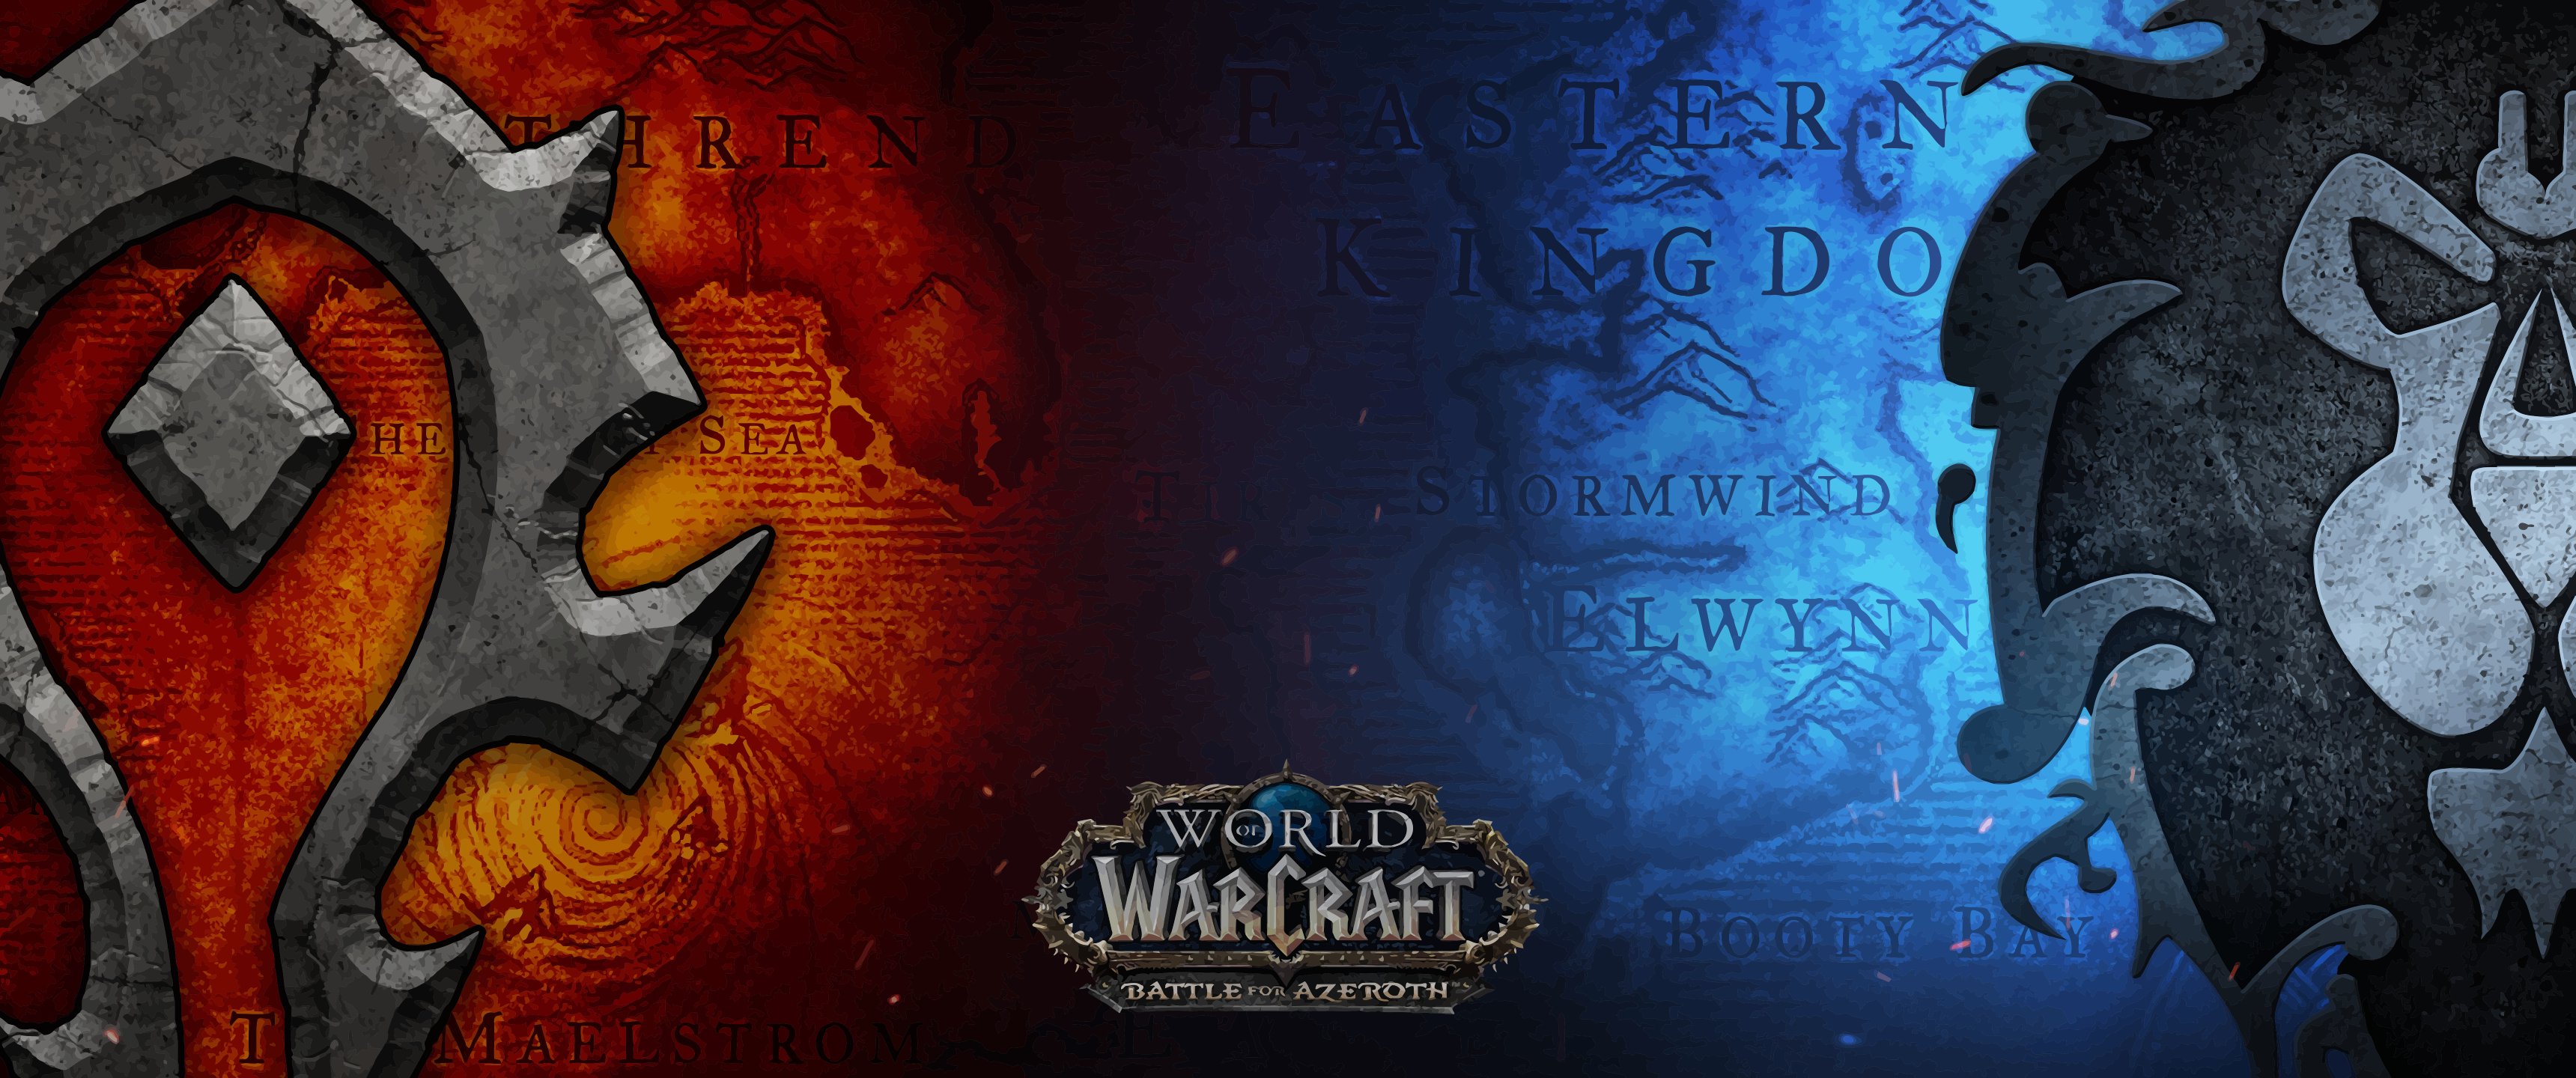 World Of Warcraft Battle For Azeroth Wallpapers Desktop